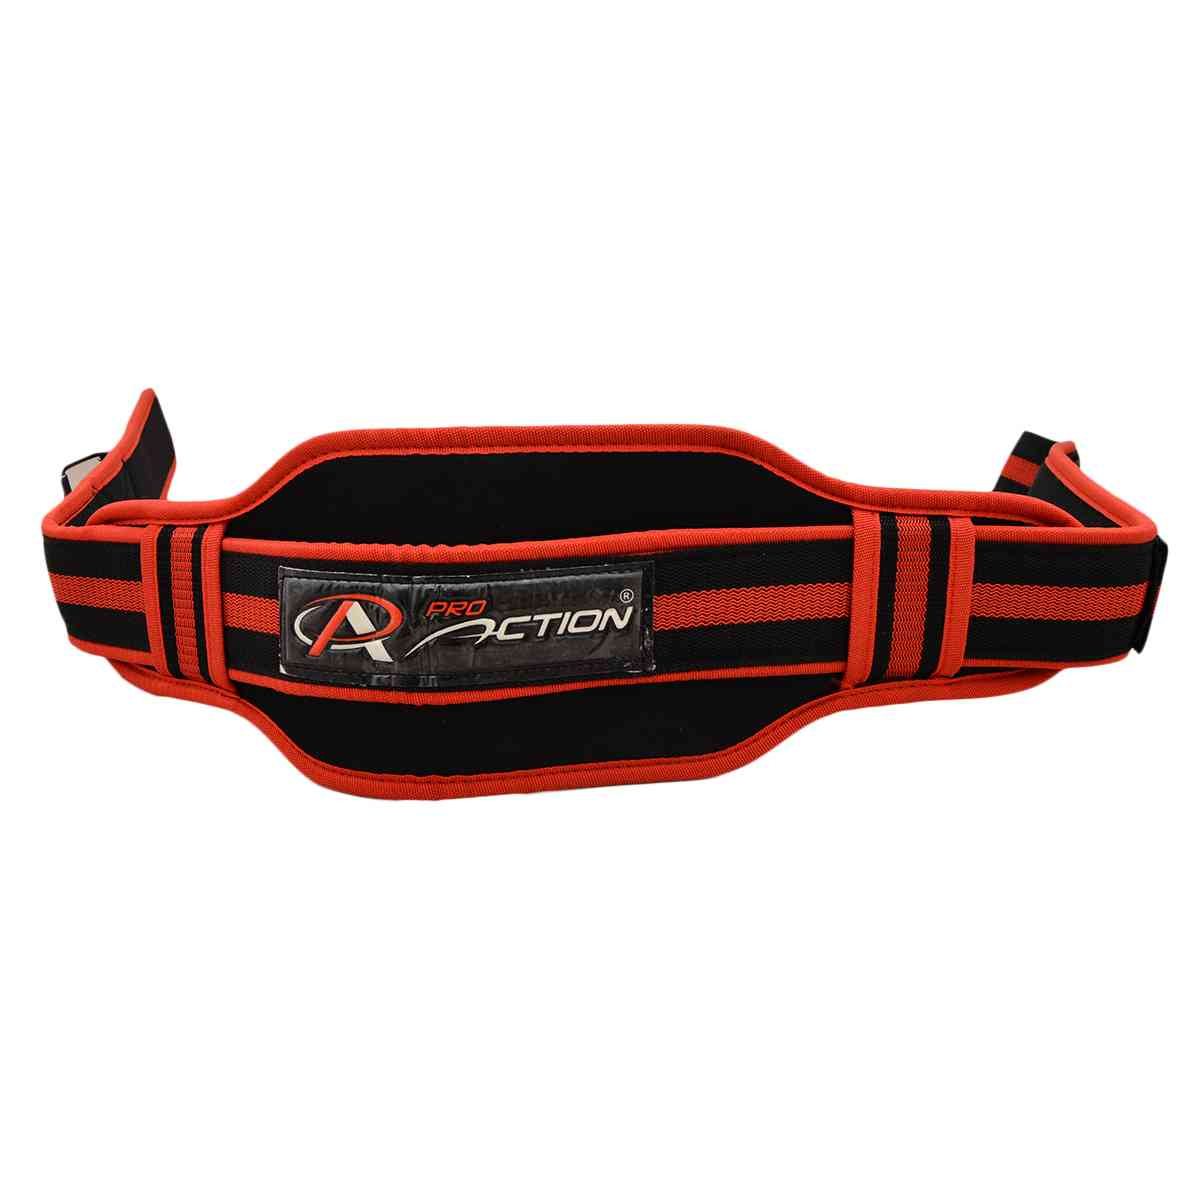 Pro Action Weight Lifting Gym Fitness Power Belt Back Pain Support Belt - Red